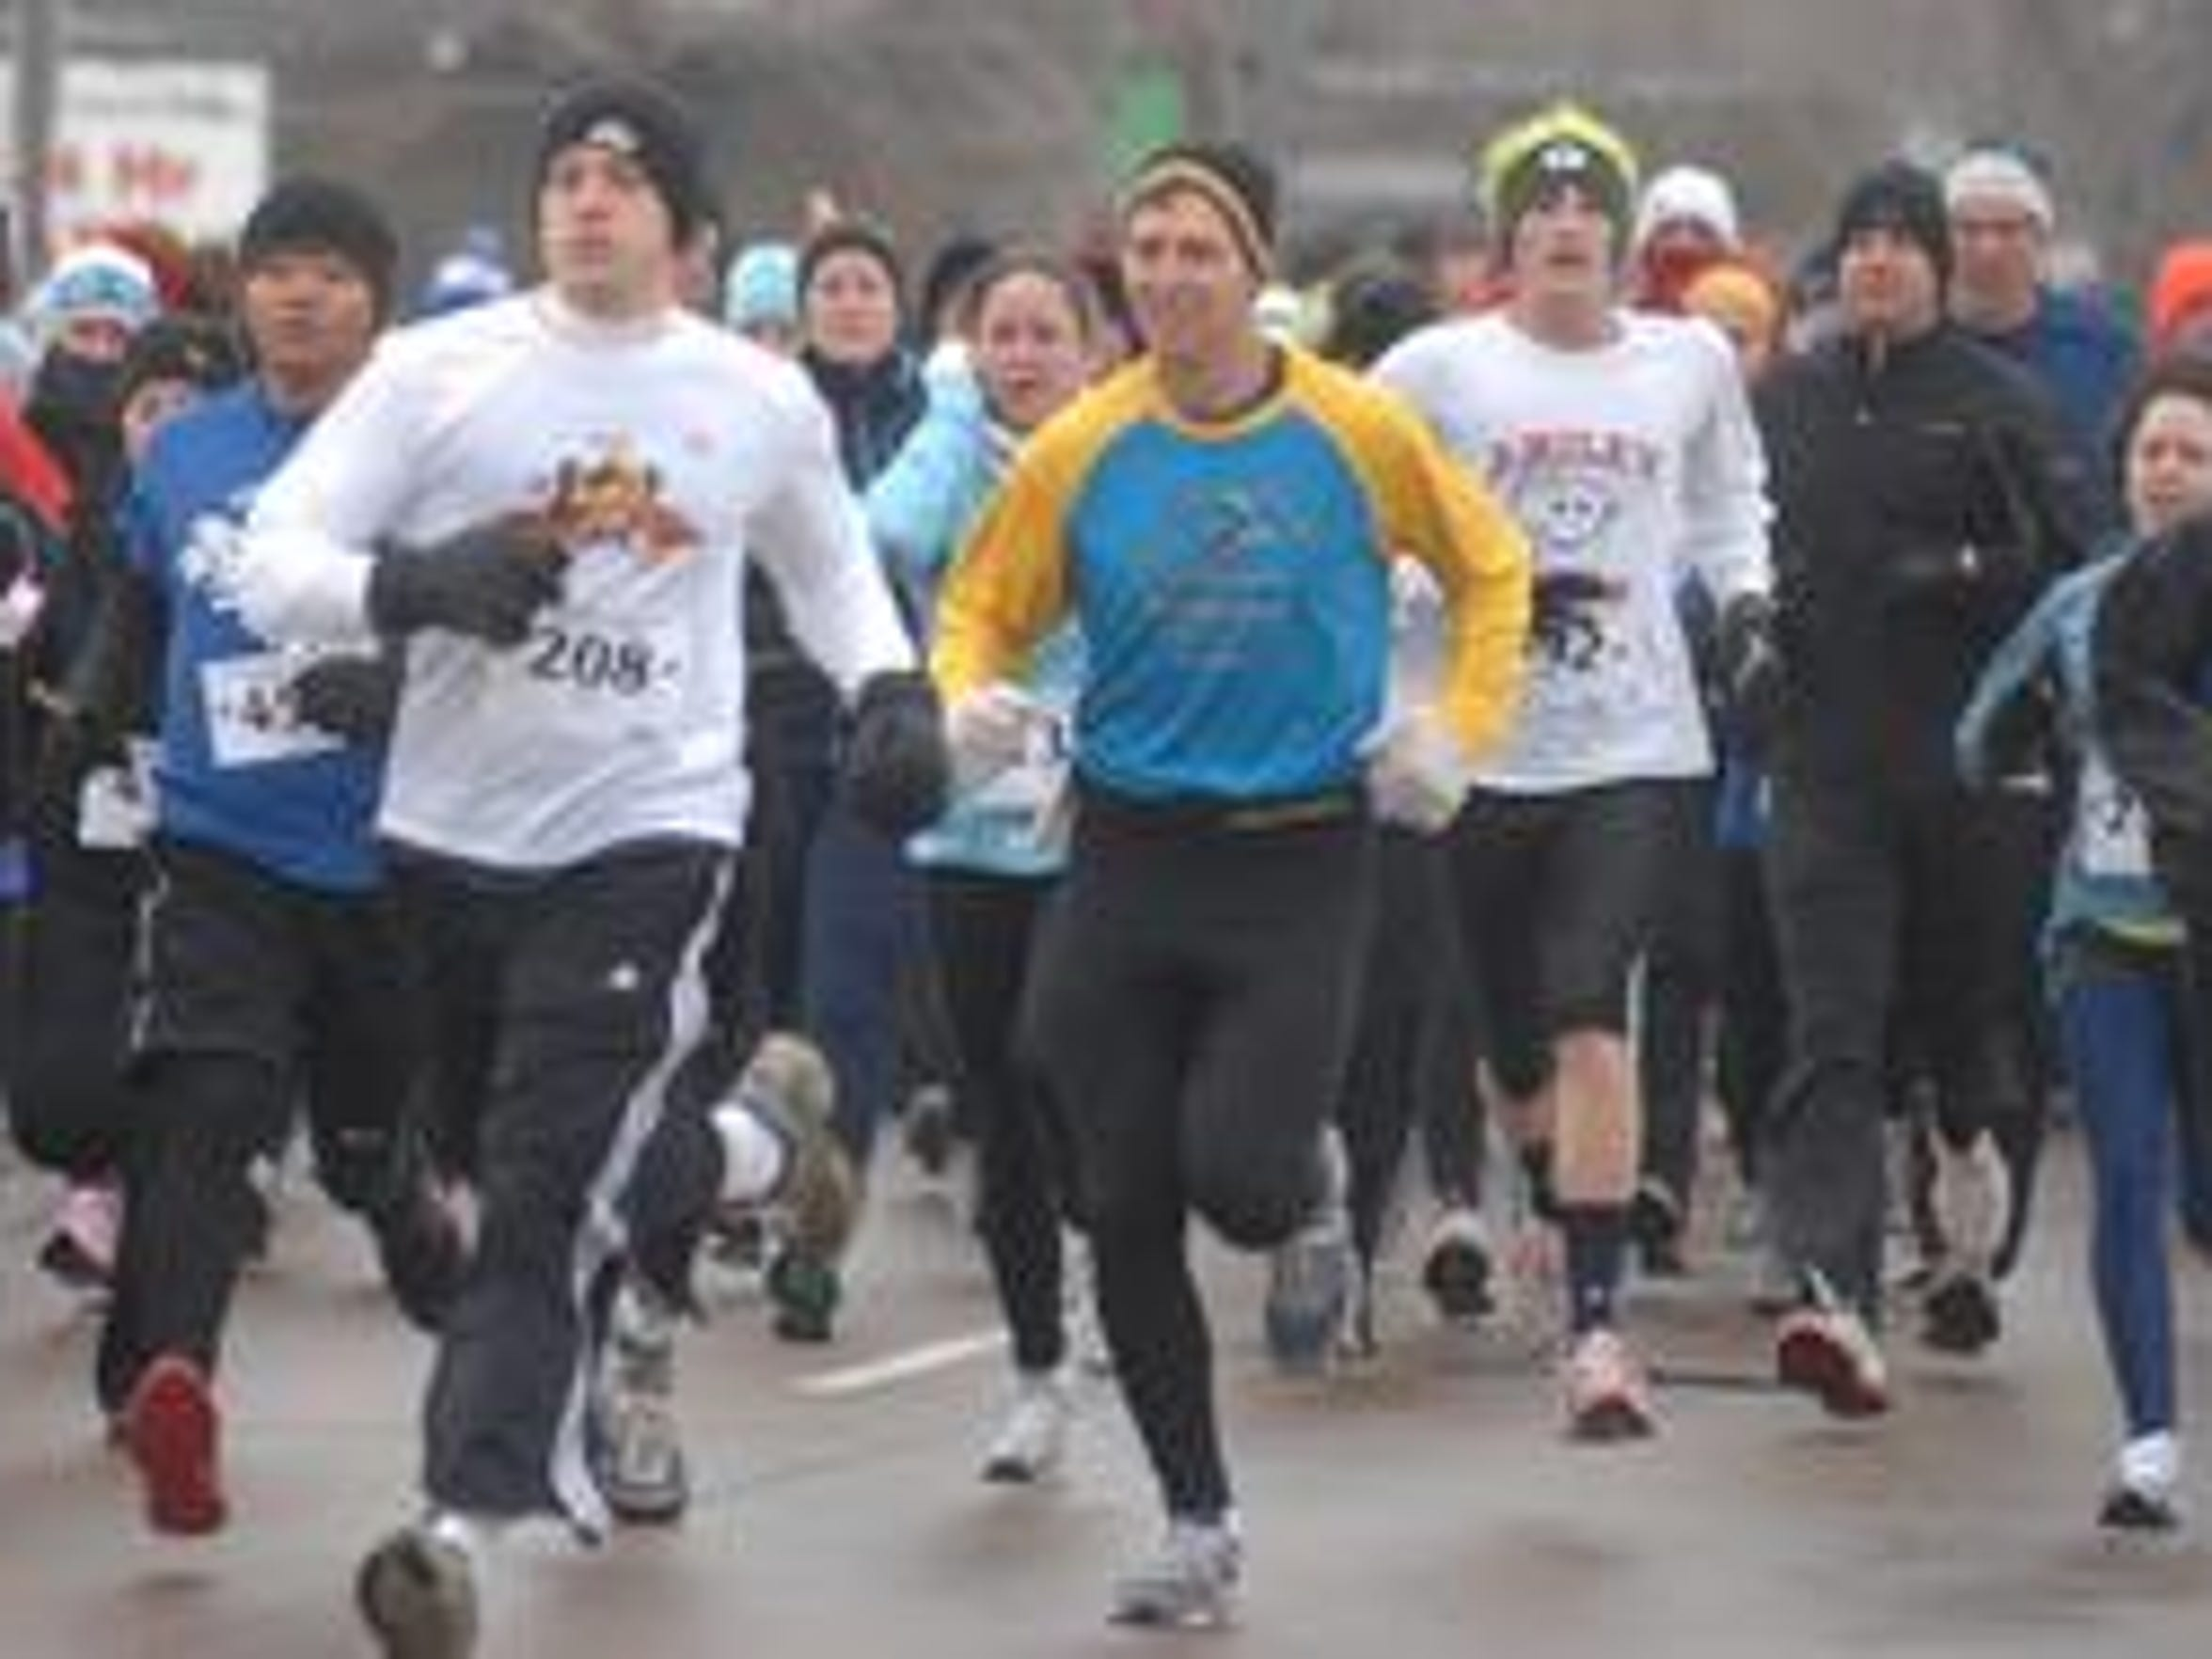 Runners battle chilly weather as they run down First Avenue during the Eastbay Turkey Trot in Wausau.